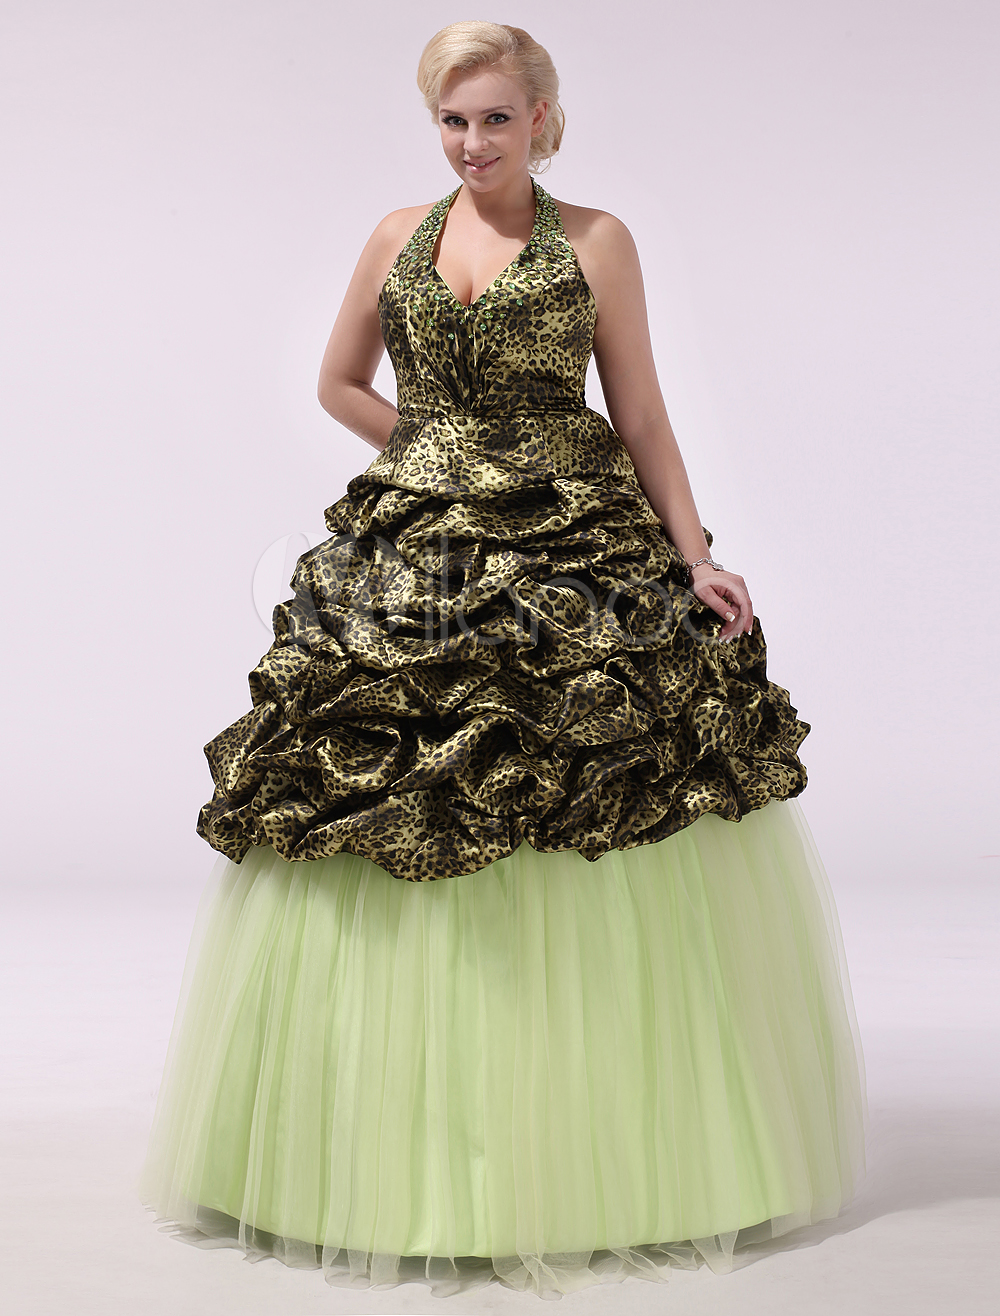 Quinceanera Dresses Plus Size Ball Gowns Green Tulle Halter Ruched Women Pageant Dresse Milanoo (Wedding) photo